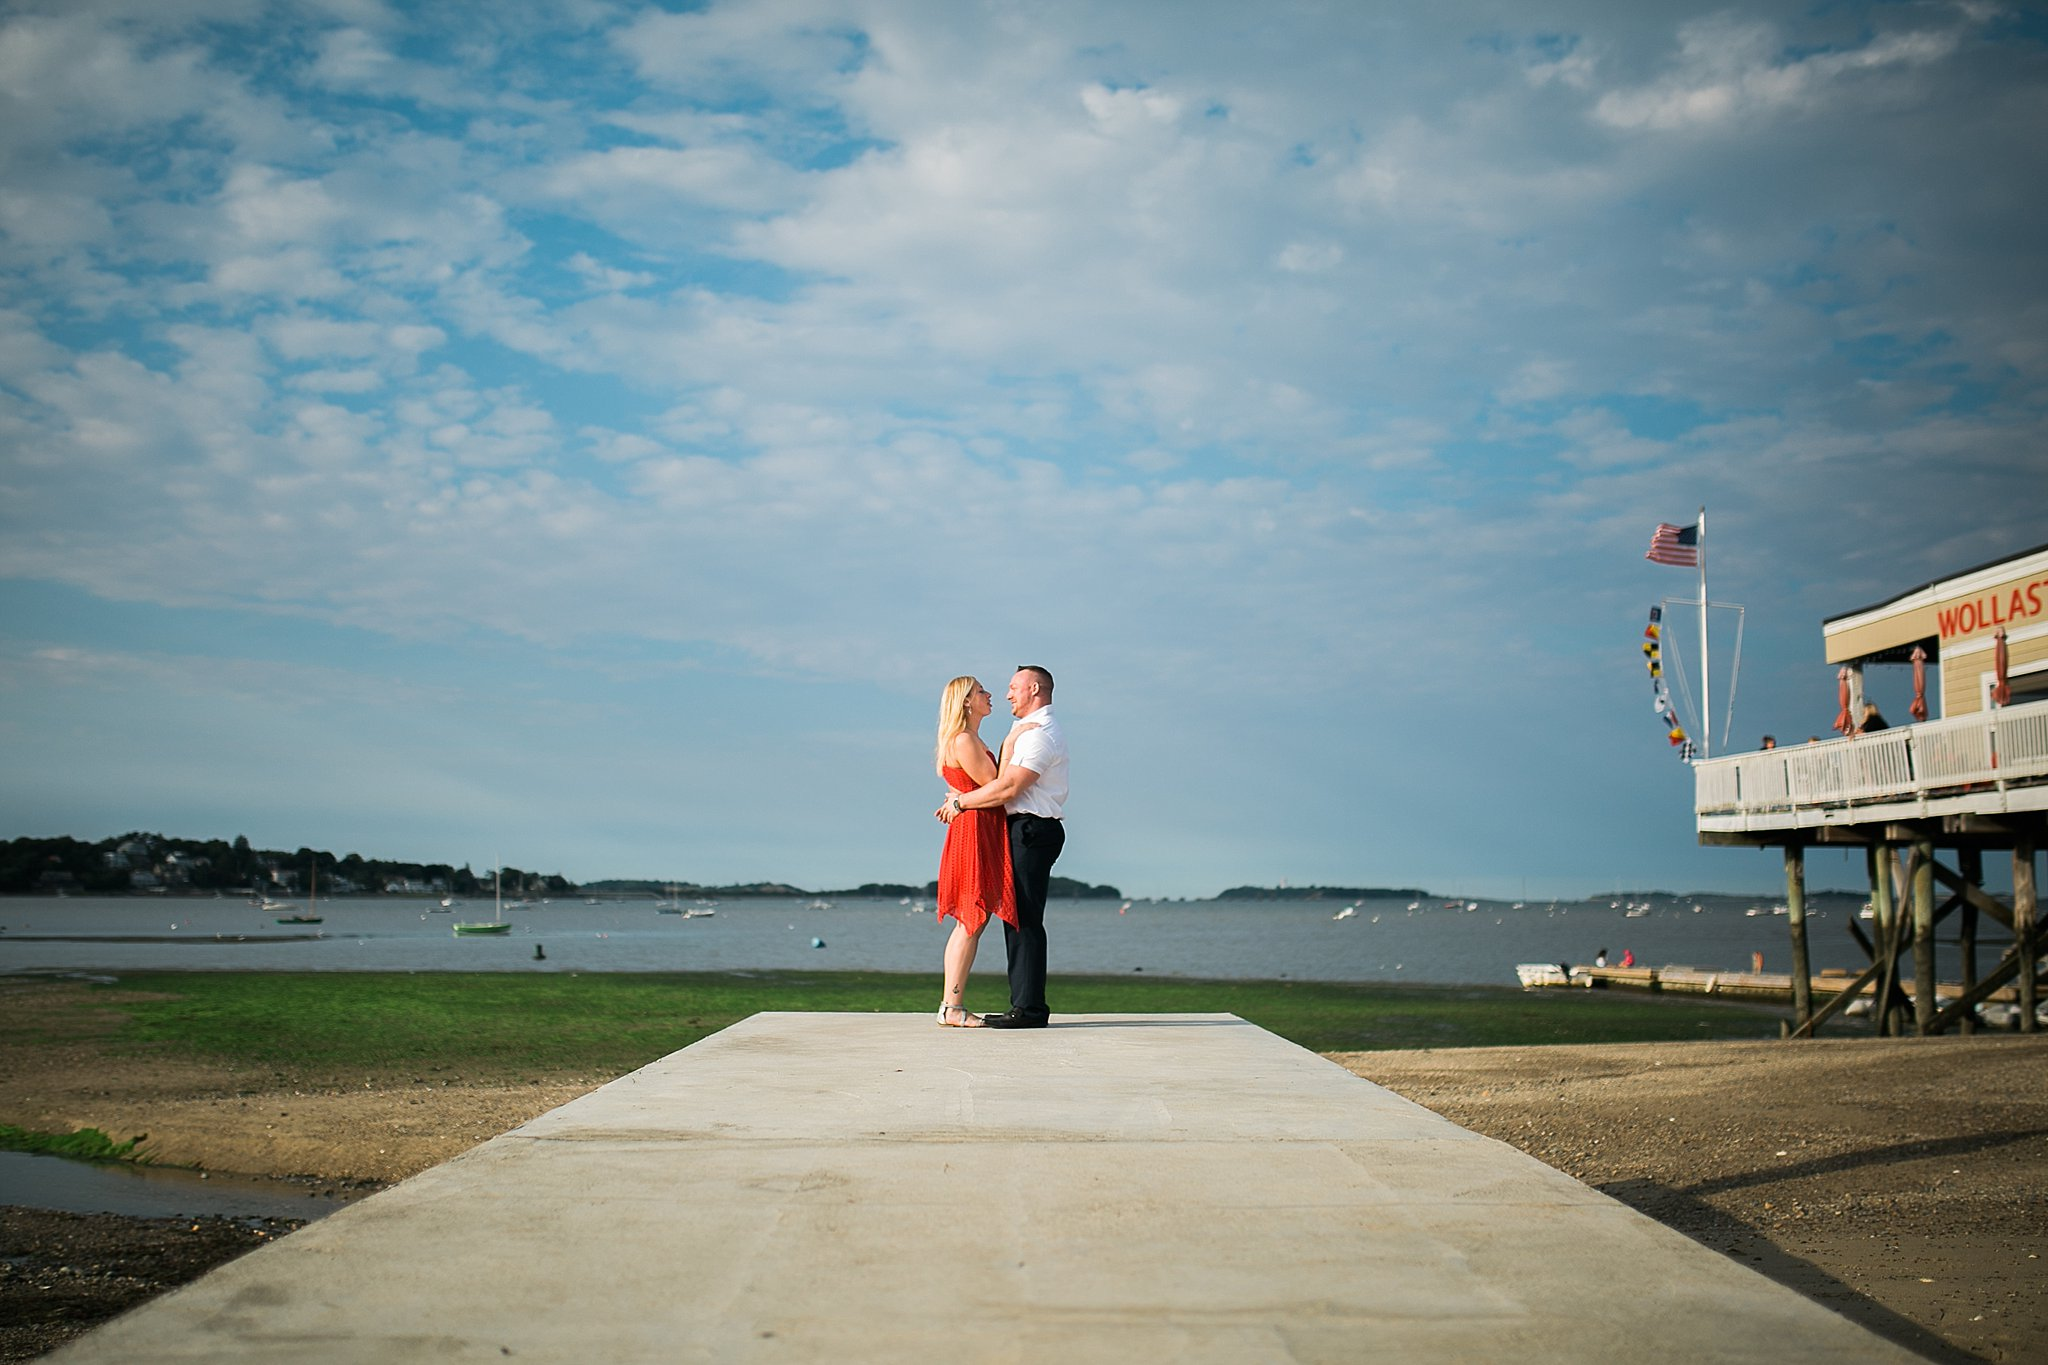 Wollaston Beach Engagement Session Sweet Alice Photography12.jpg